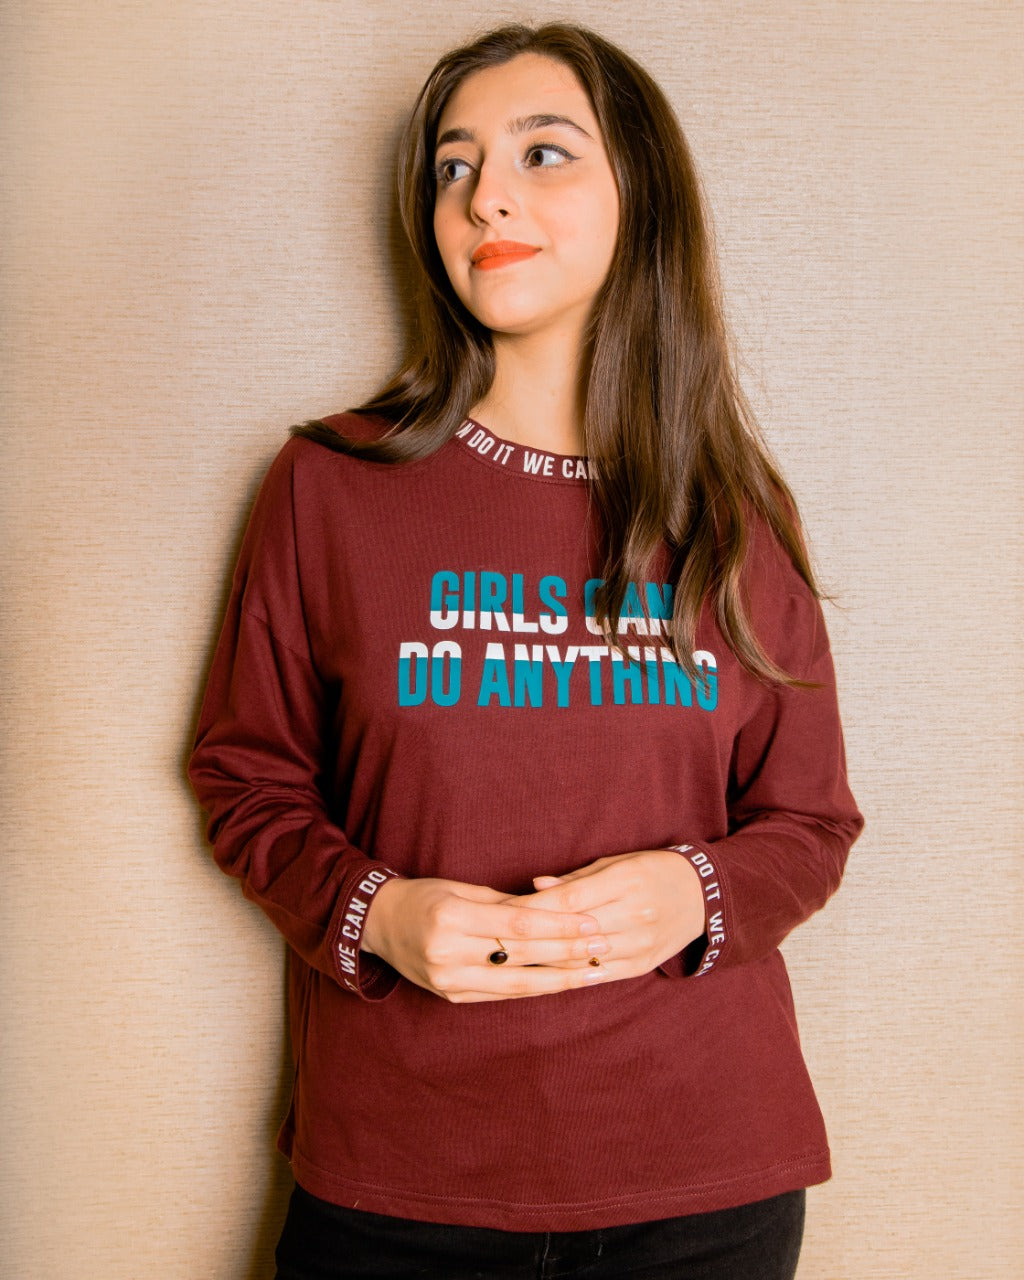 WOMEN'S L/S GRAPHIC TEE-BOURDEX-EMSS21KW-2018 - Export Mall Online Store Sale